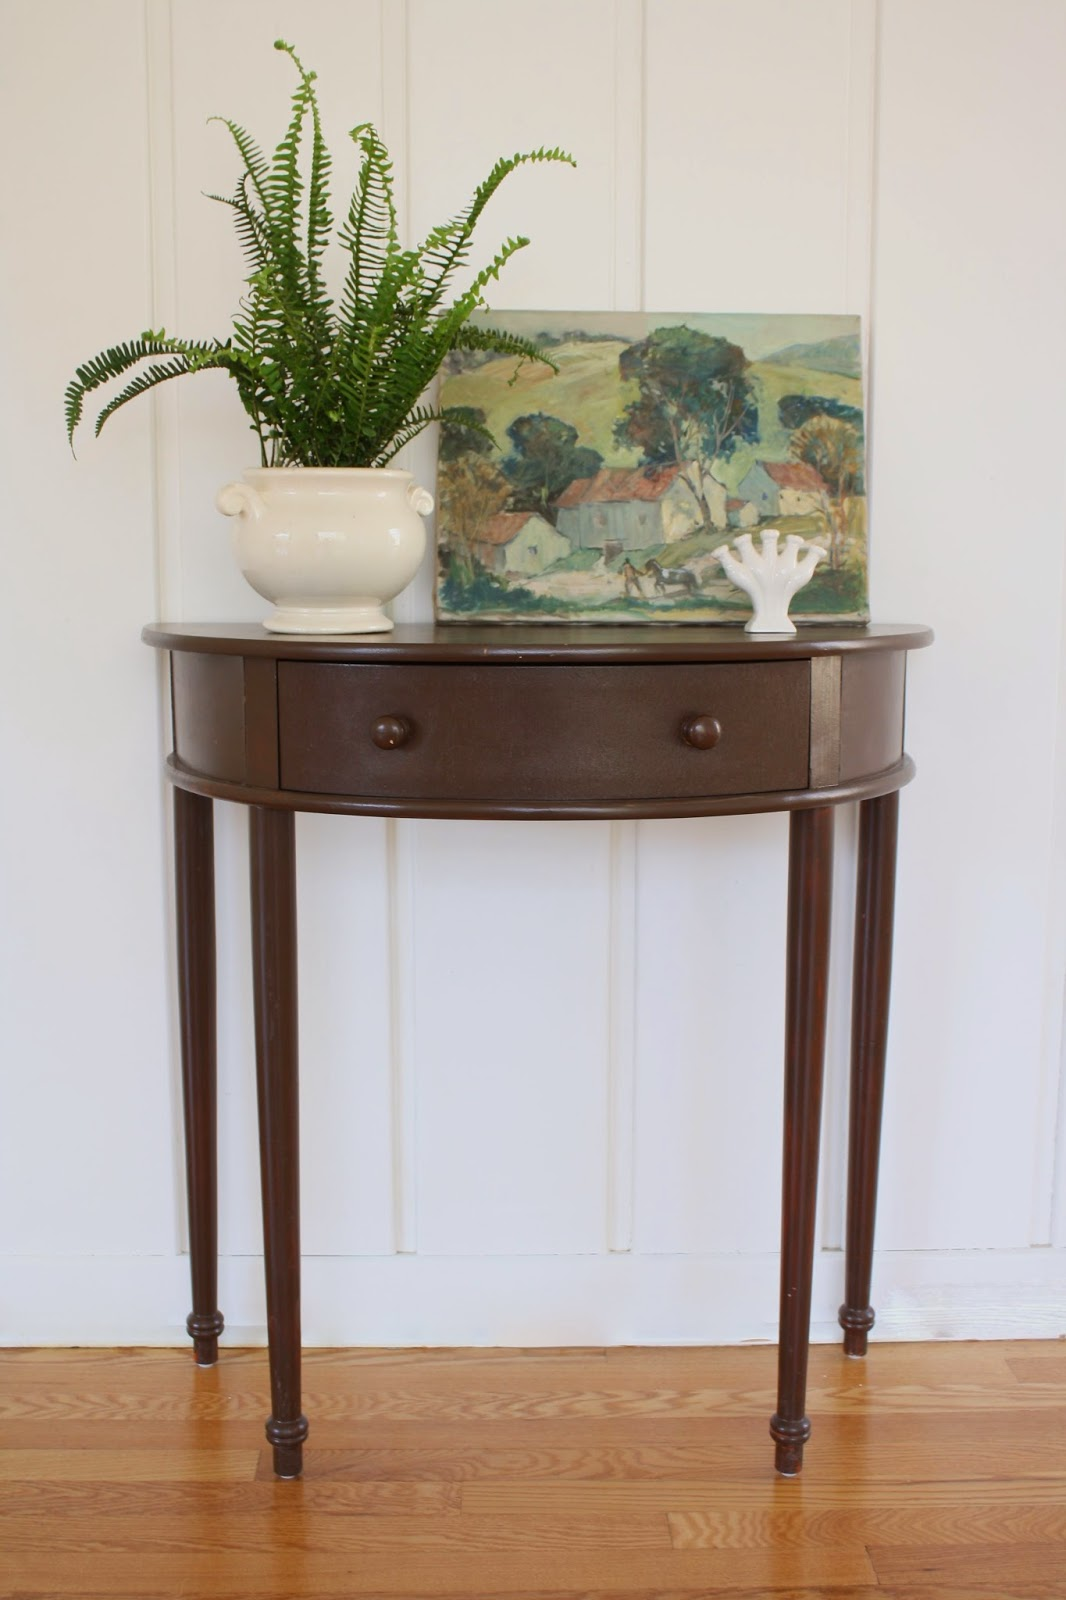 thrifted demilune table via Meet Me in Philadelphia